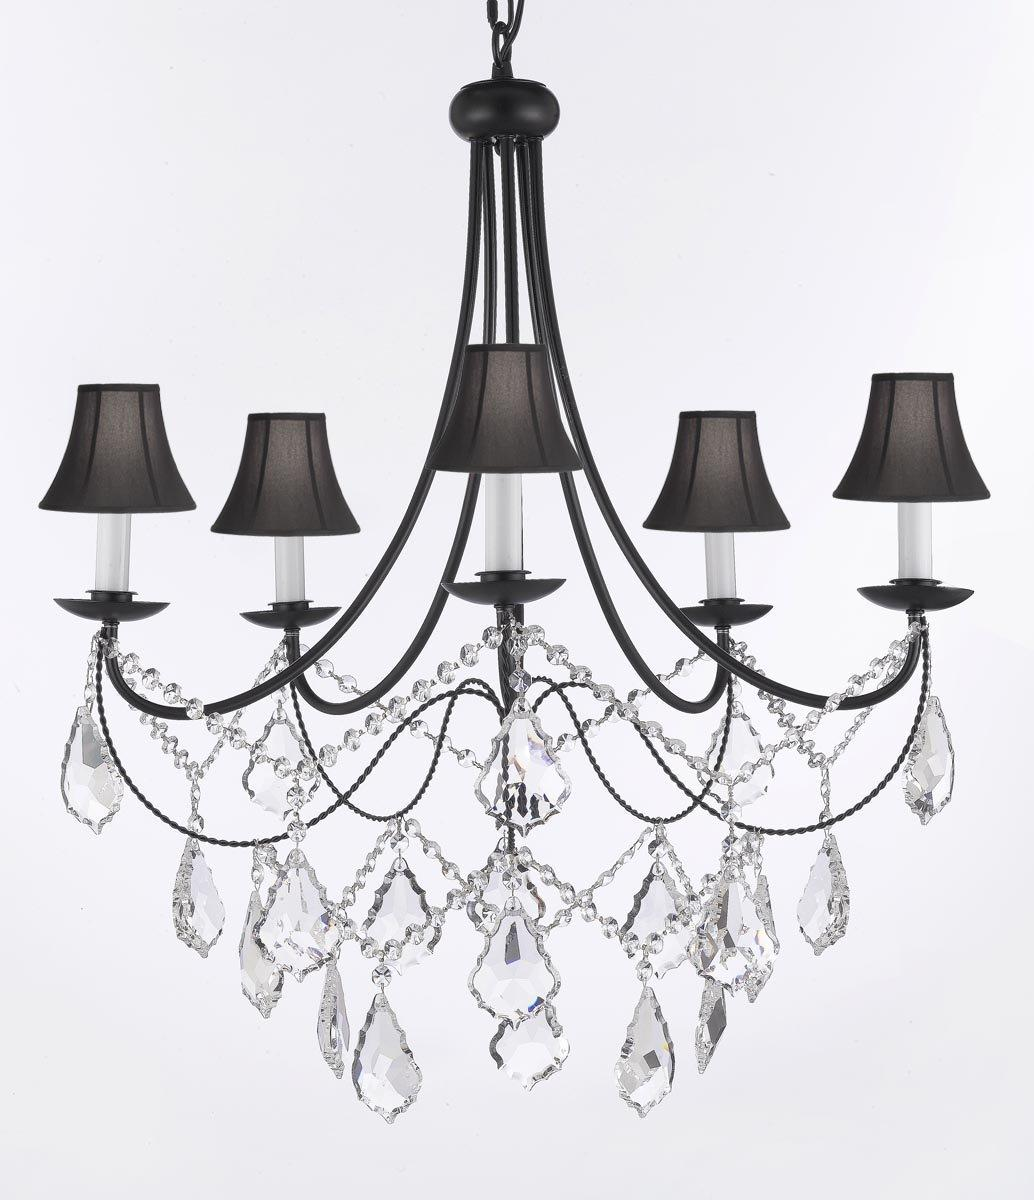 Plug In Crystal Wrought Iron Chandelier Lighting With Black Shades H22.5 x W26